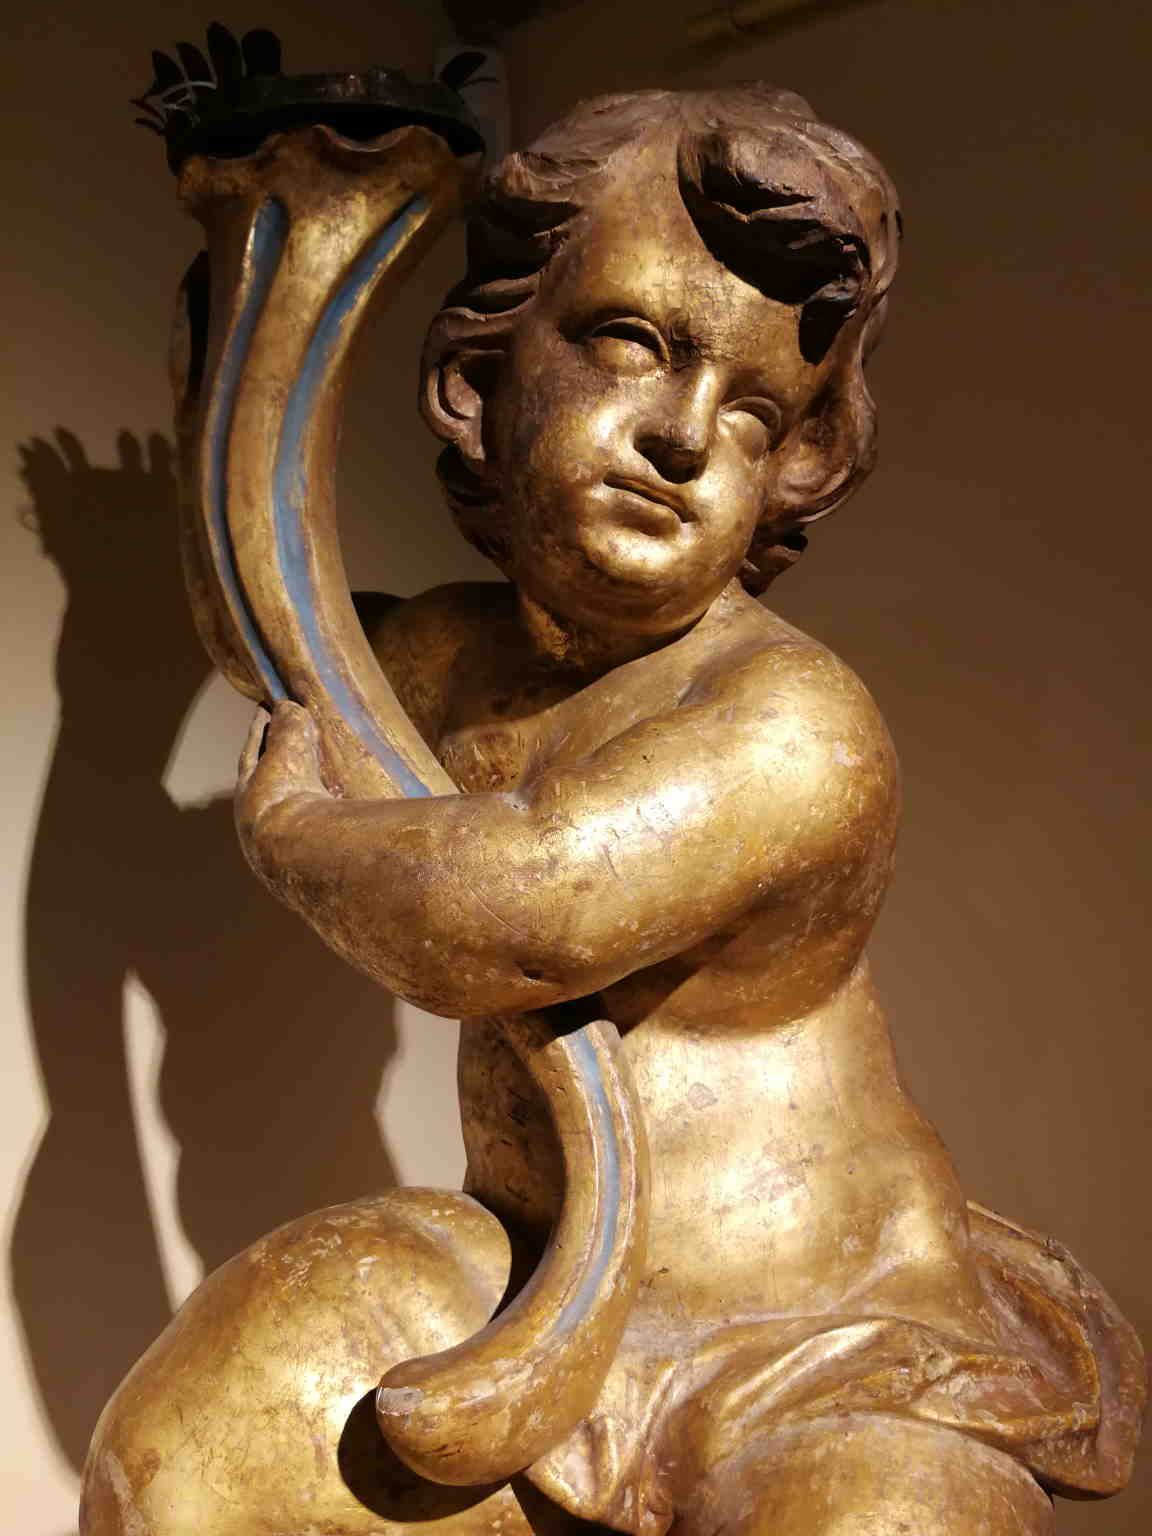 Tuscan Manufacturer, Baroque Putto Candle Holder, 17th-18th, gilded wood